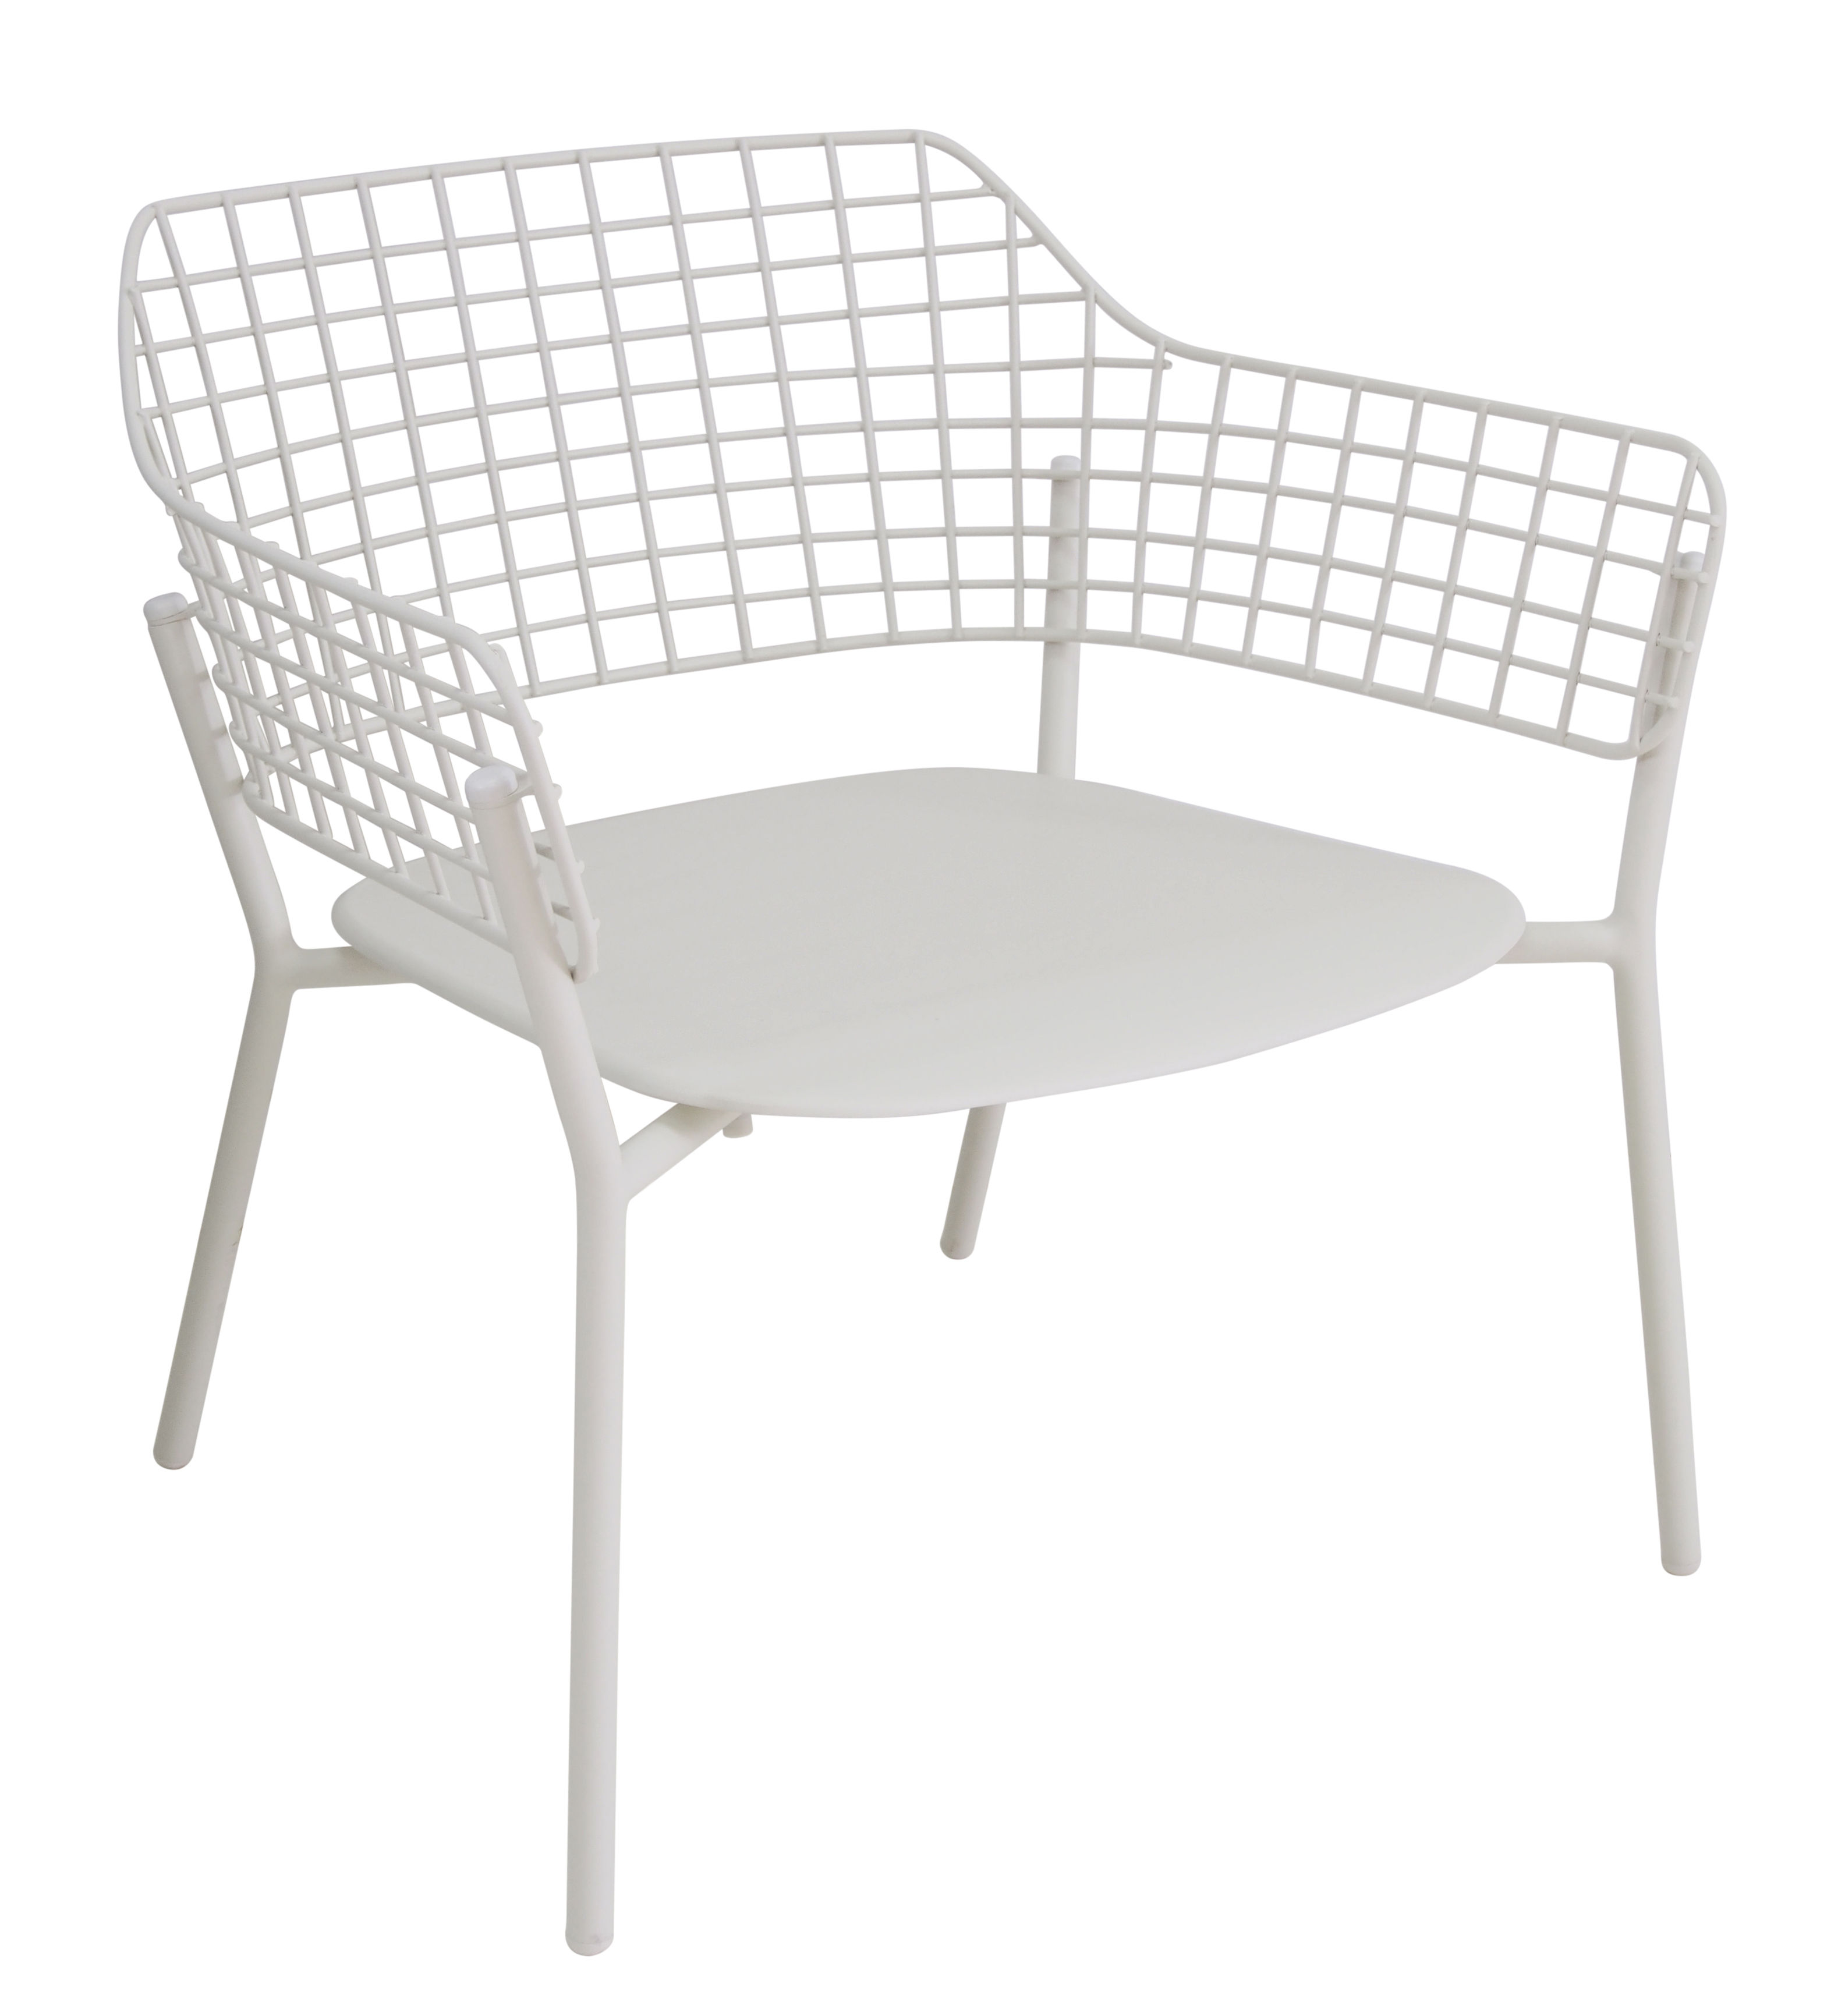 Sessel Metall Lyze Lounge Sessel Metall Weiß By Emu Made In Design